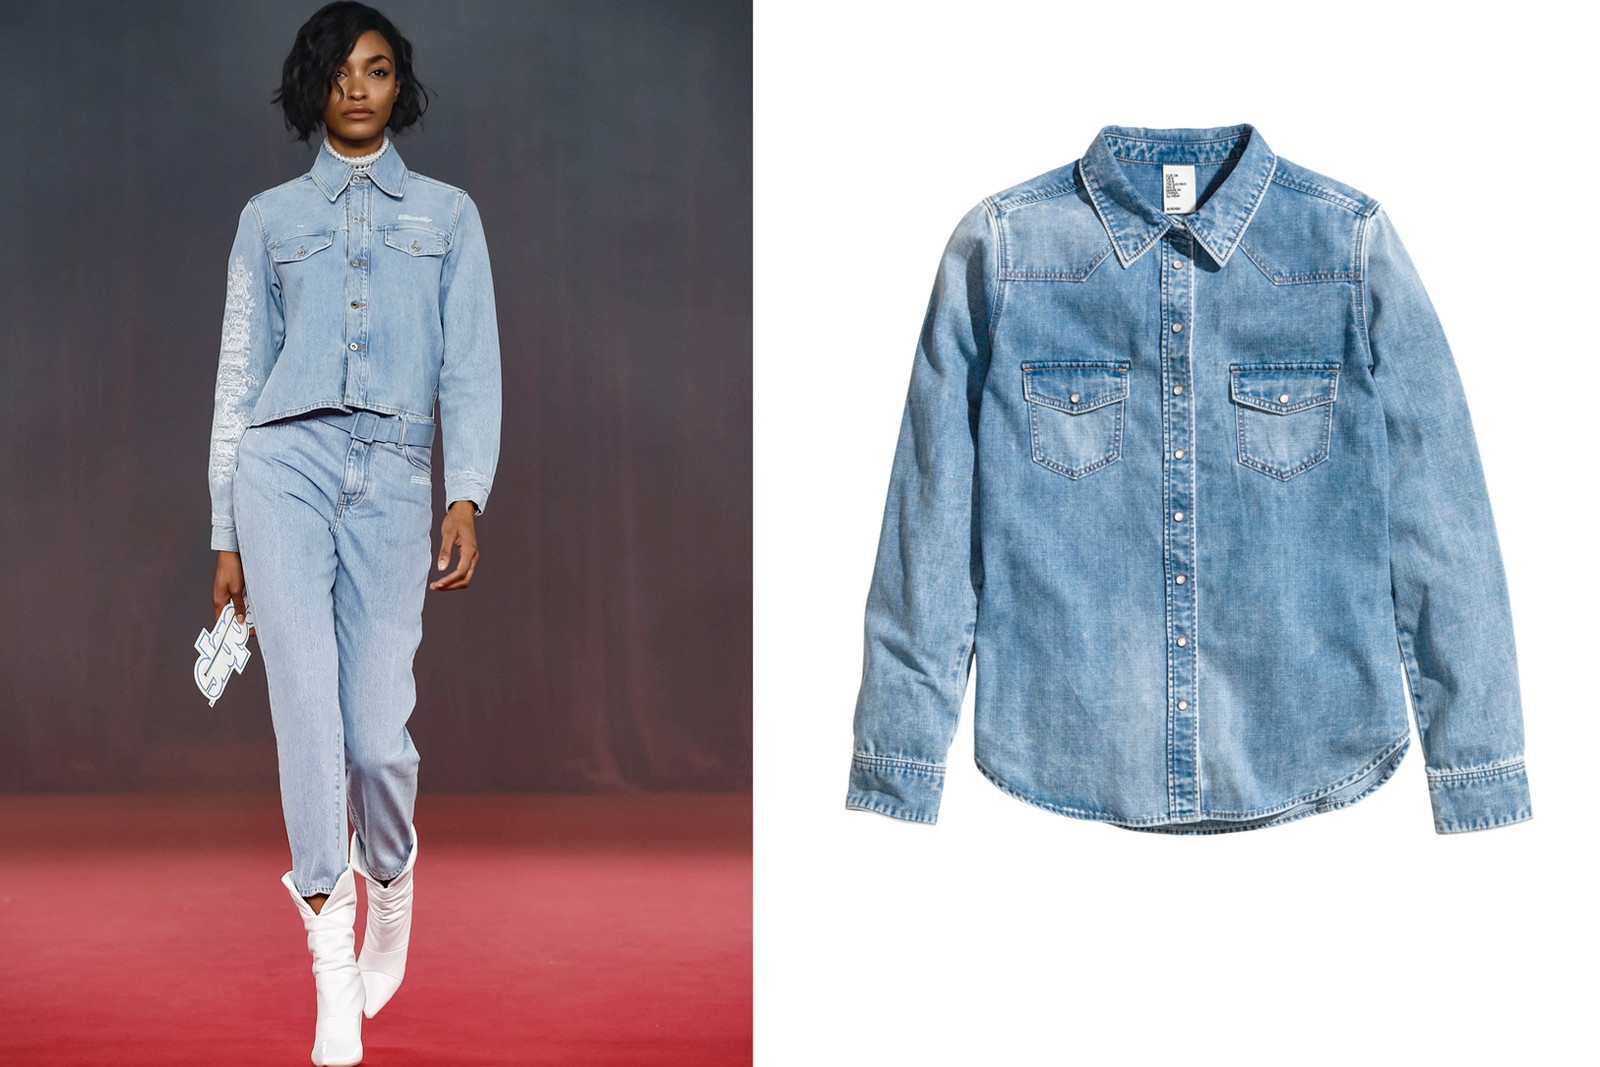 Off White Spring Summer 2018 Collection Recreate Virgil Abloh Naomi Campbell Kaia Gerber Jourdan Dunn Budget